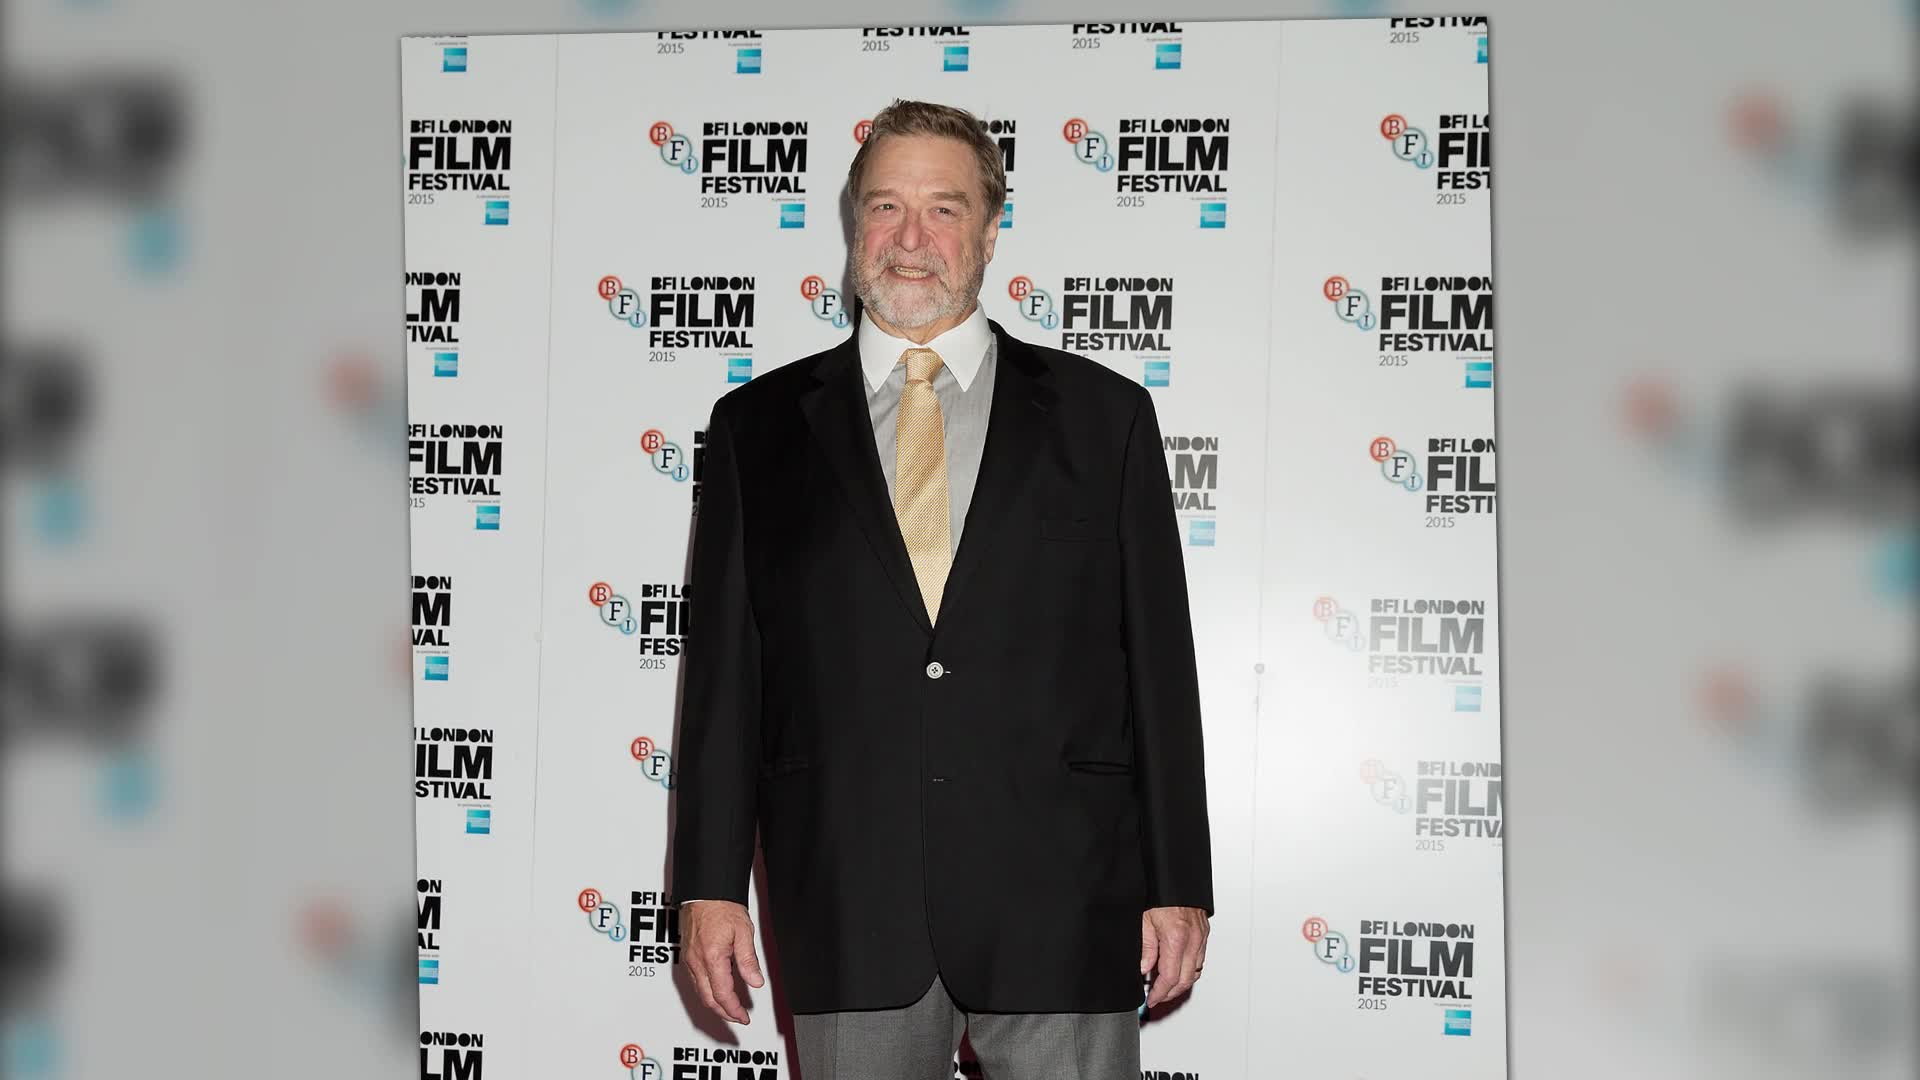 John Goodman's Amazing Weight Loss; Before and After!